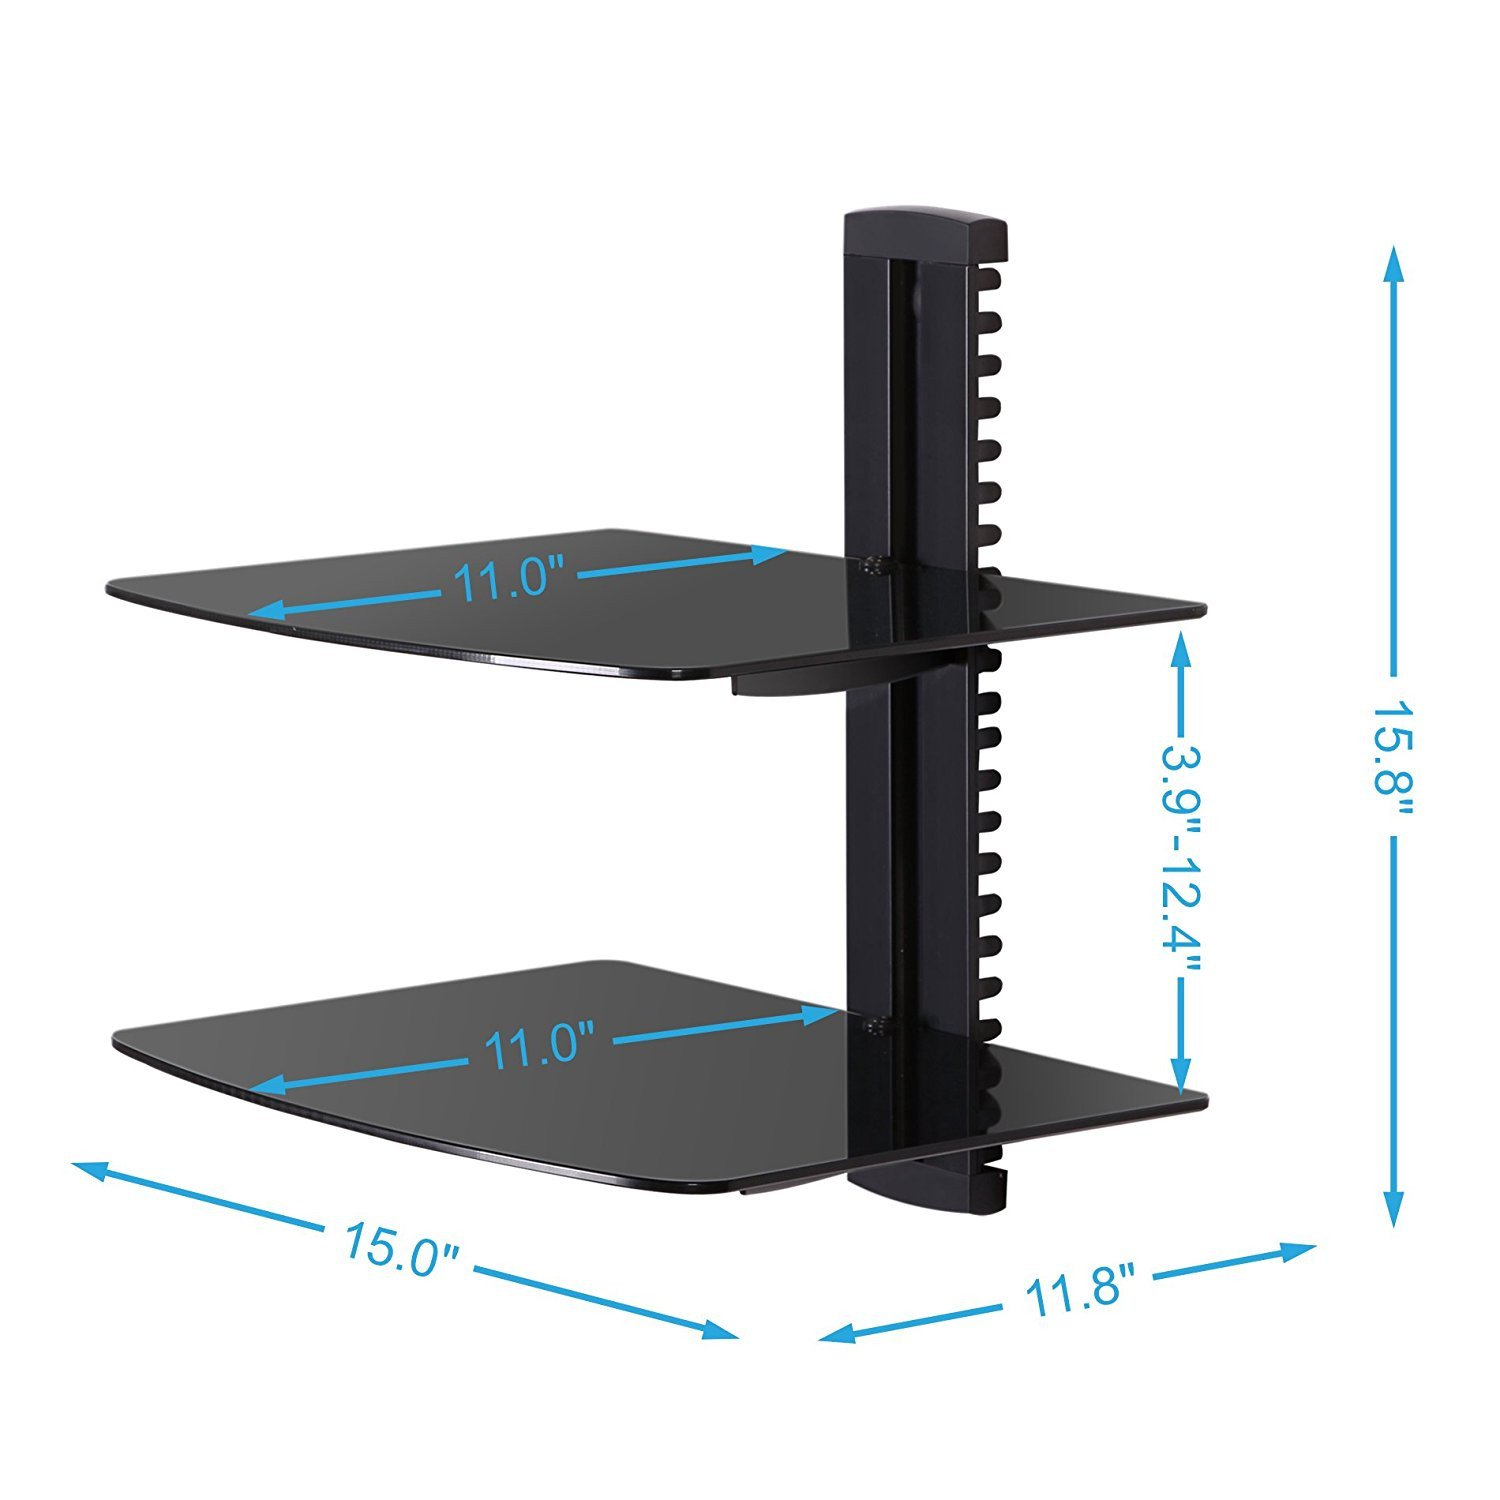 black tier adjustable wall mount glass floating dvd component shelf fitueyes tempered tiers shelves bracket stand for players blu ray receiver player shallow storage bunnings